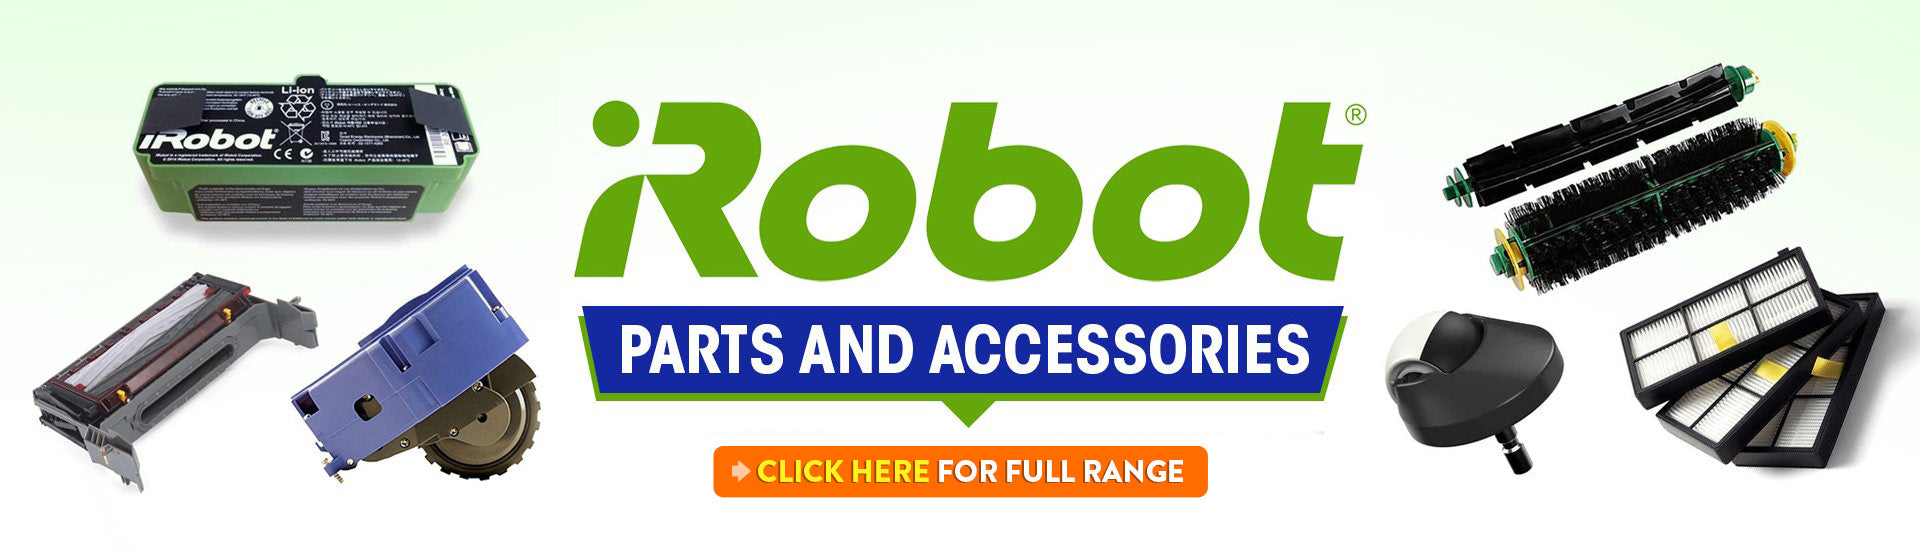 iRobot Roomba Parts Accessories Filters Brushes Batteries